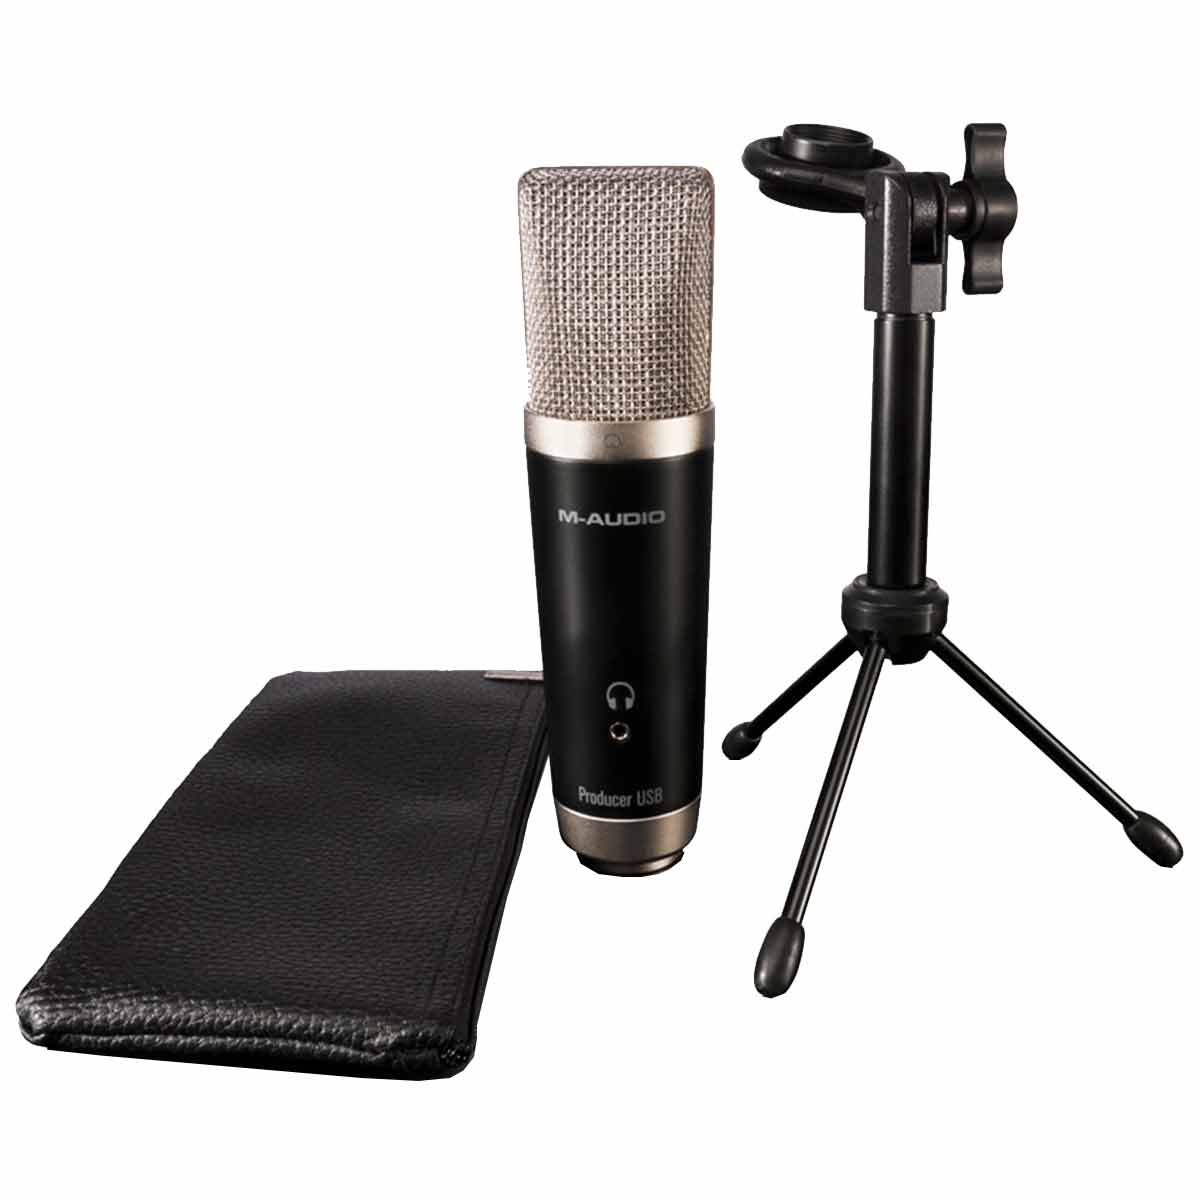 Kit Microfone USB + Software para Estúdio de Gravação Vocal Studio - M-Audio